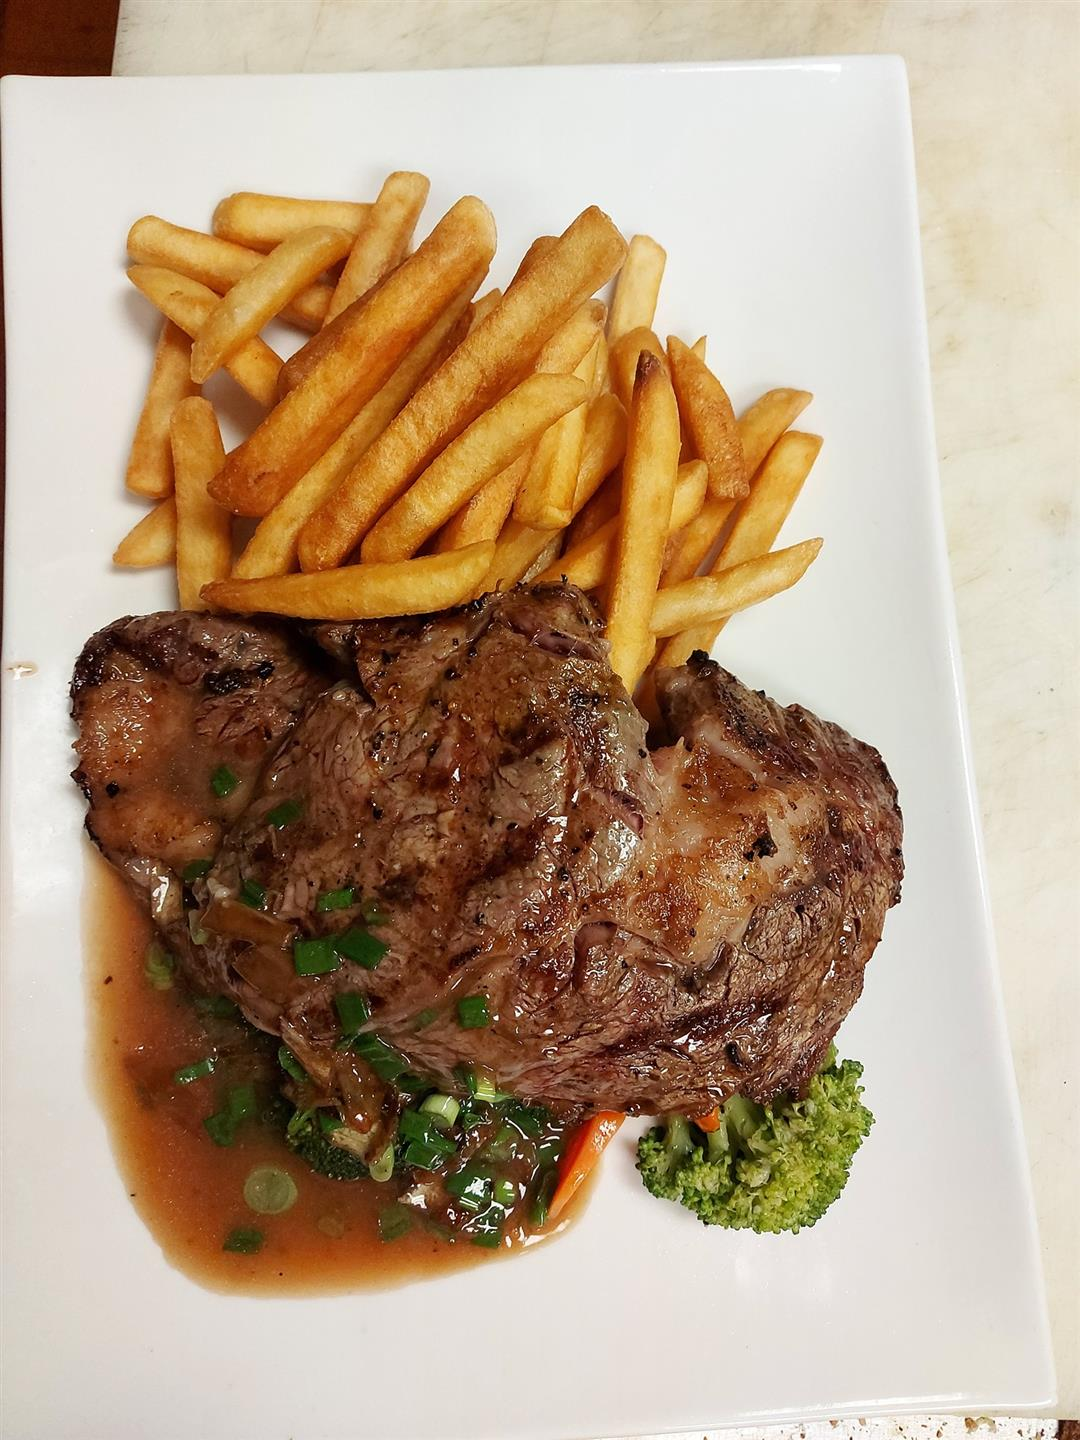 grilled steak with a side of french fries